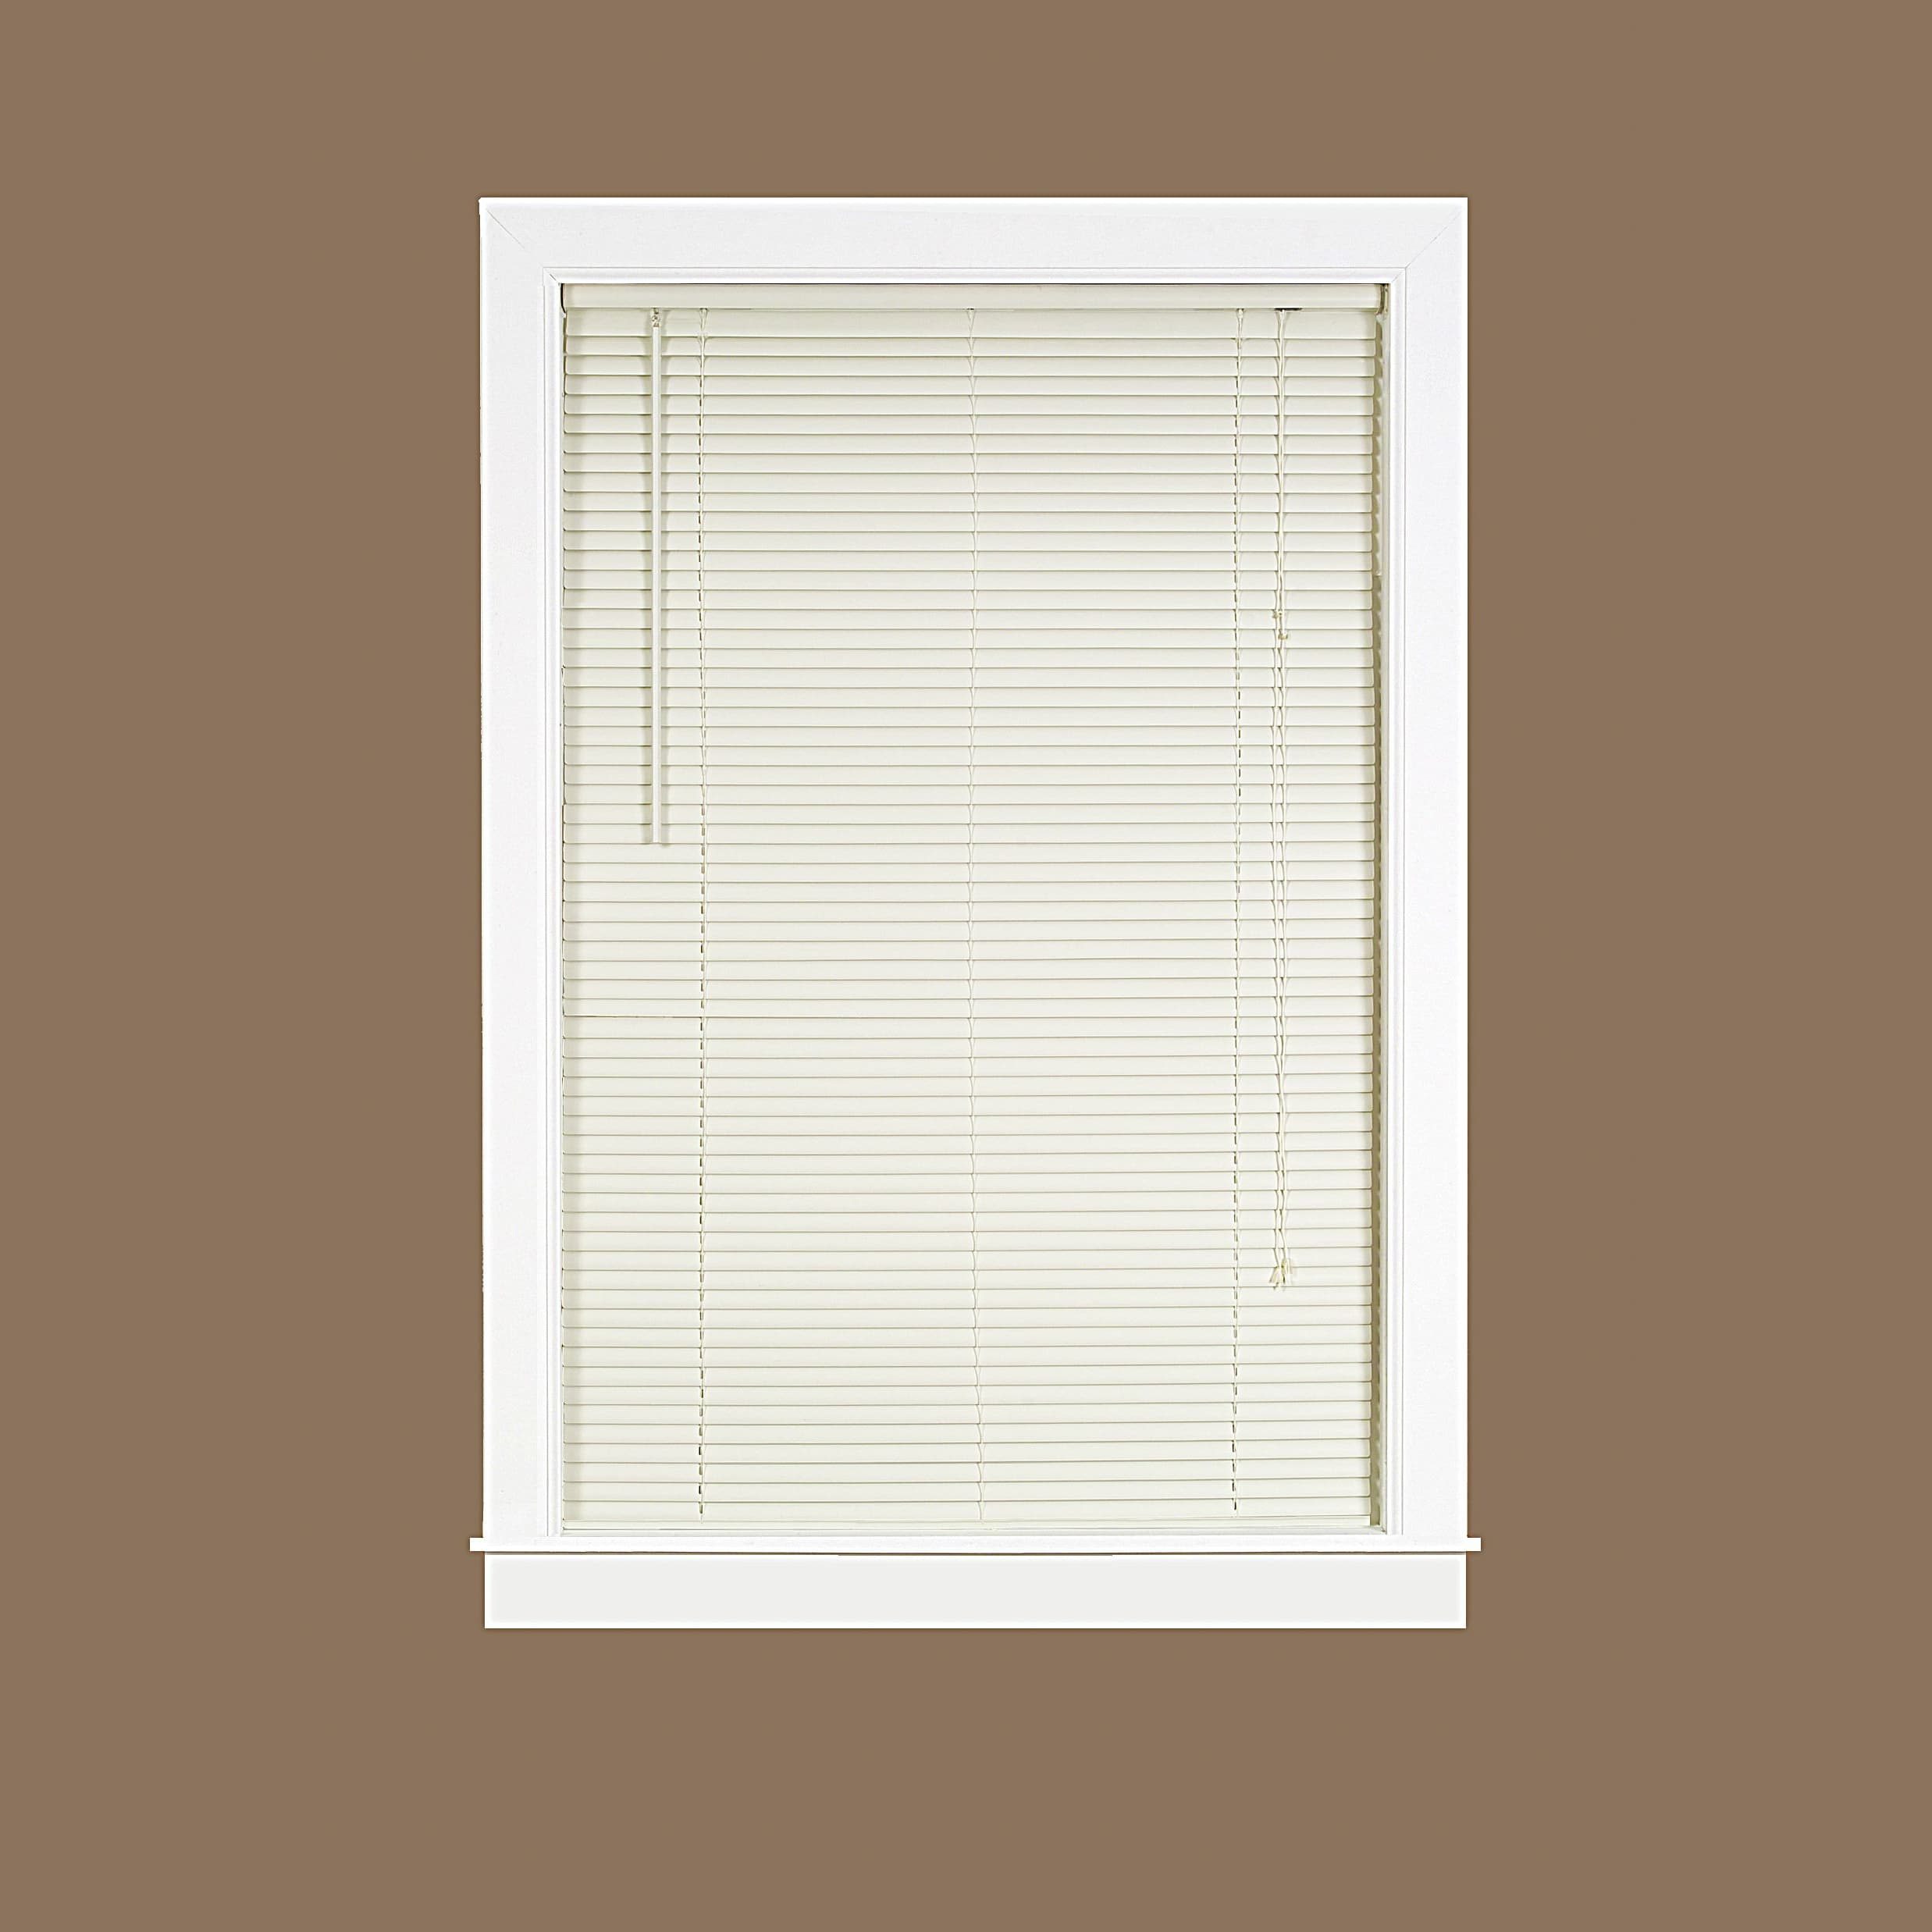 roller paloma nextday egg up day close duck next blackout vale blinds decora excel